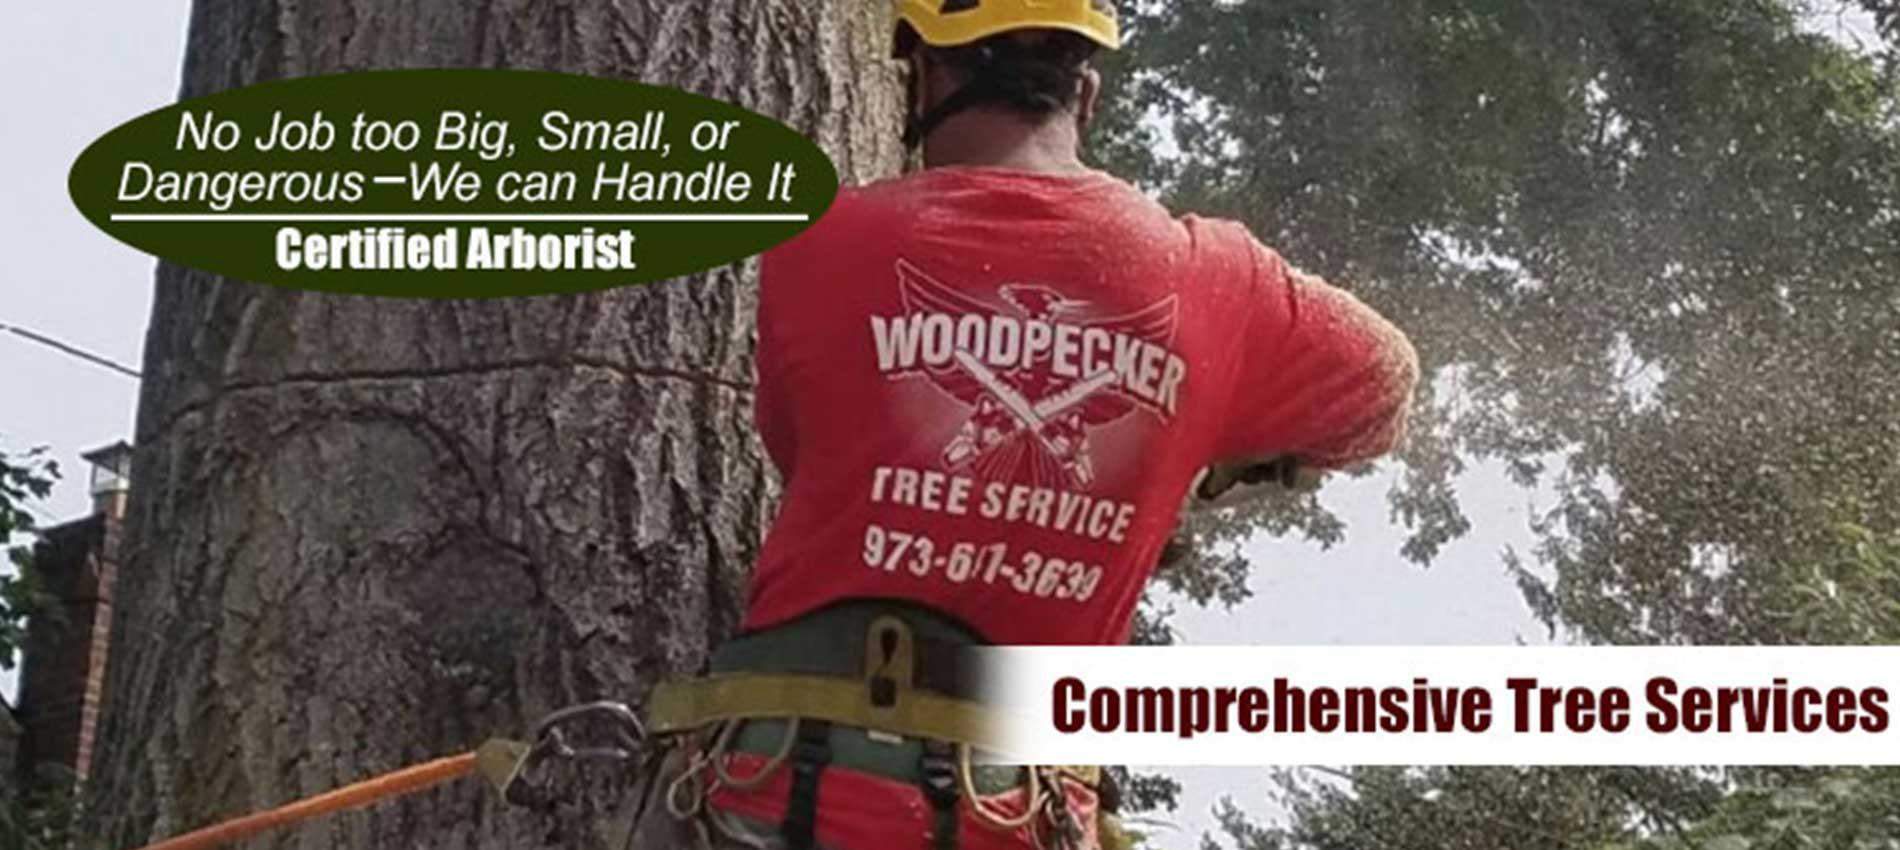 Certified Arborist - Woodpecker Tree Service - No Job Too Big or Too Small. We Can Handle It!